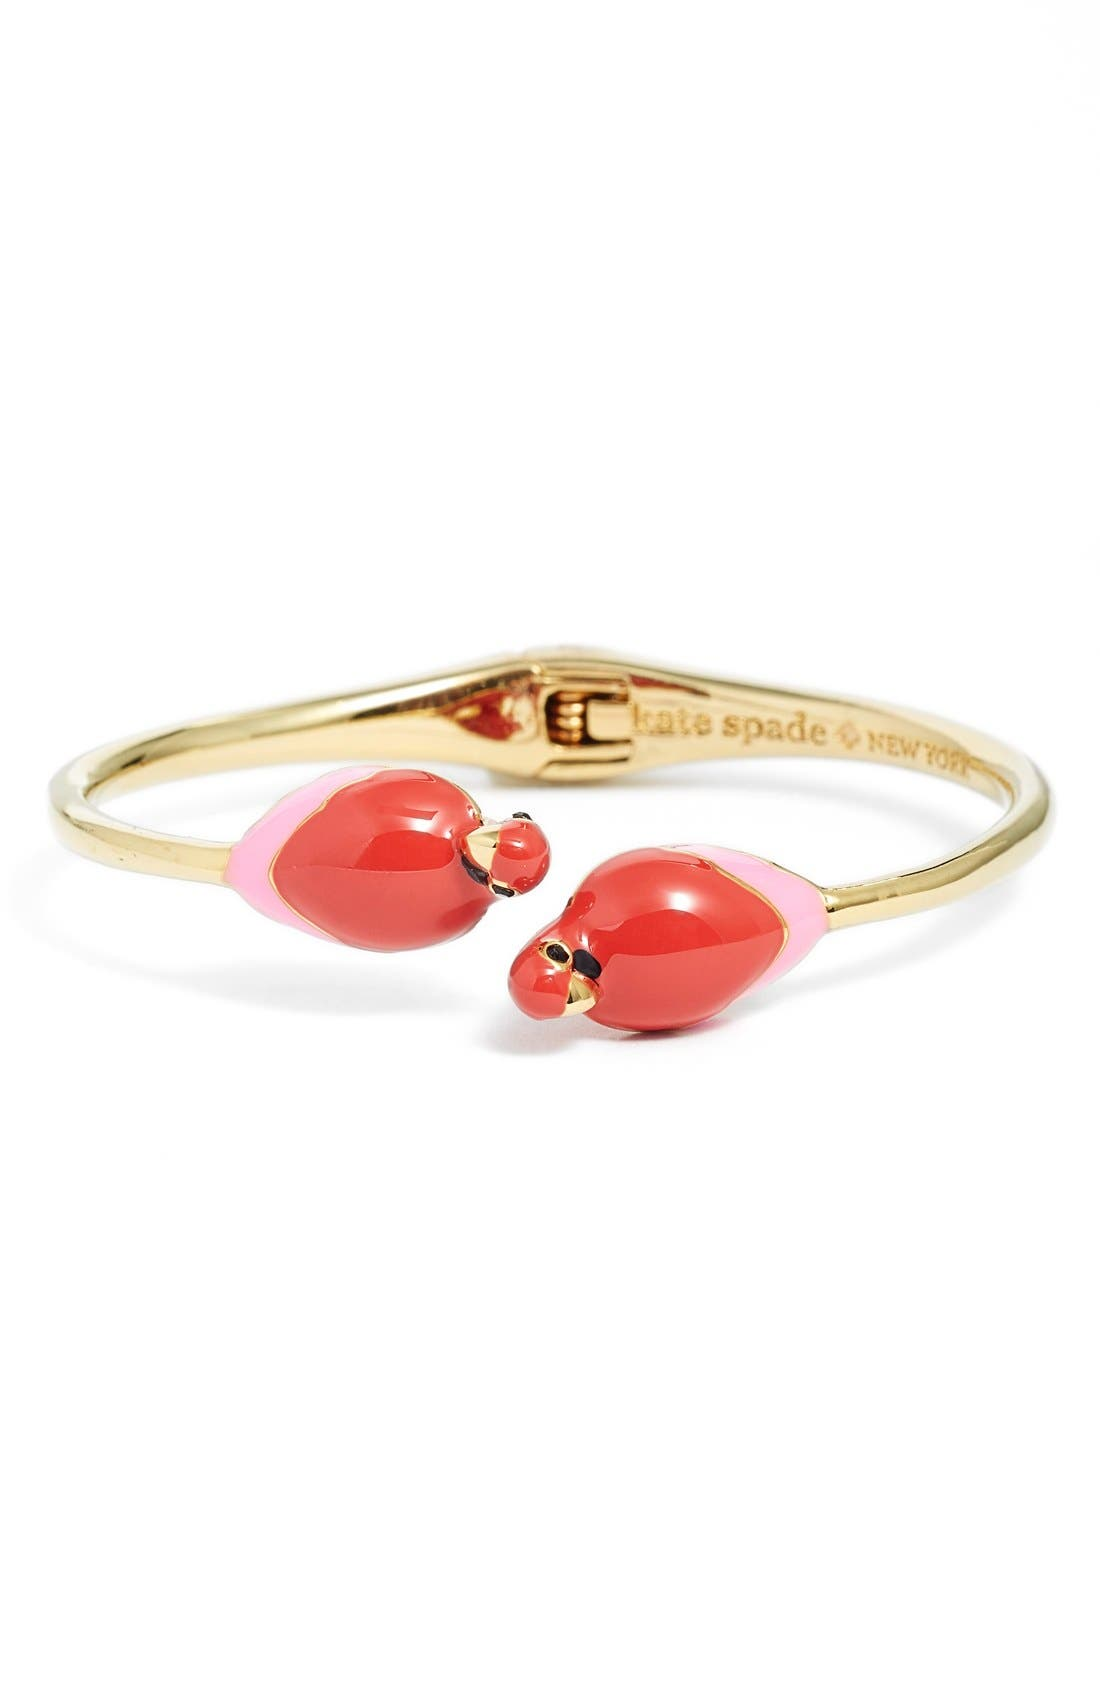 Alternate Image 1 Selected - kate spade new york 'out of office' parrot bangle